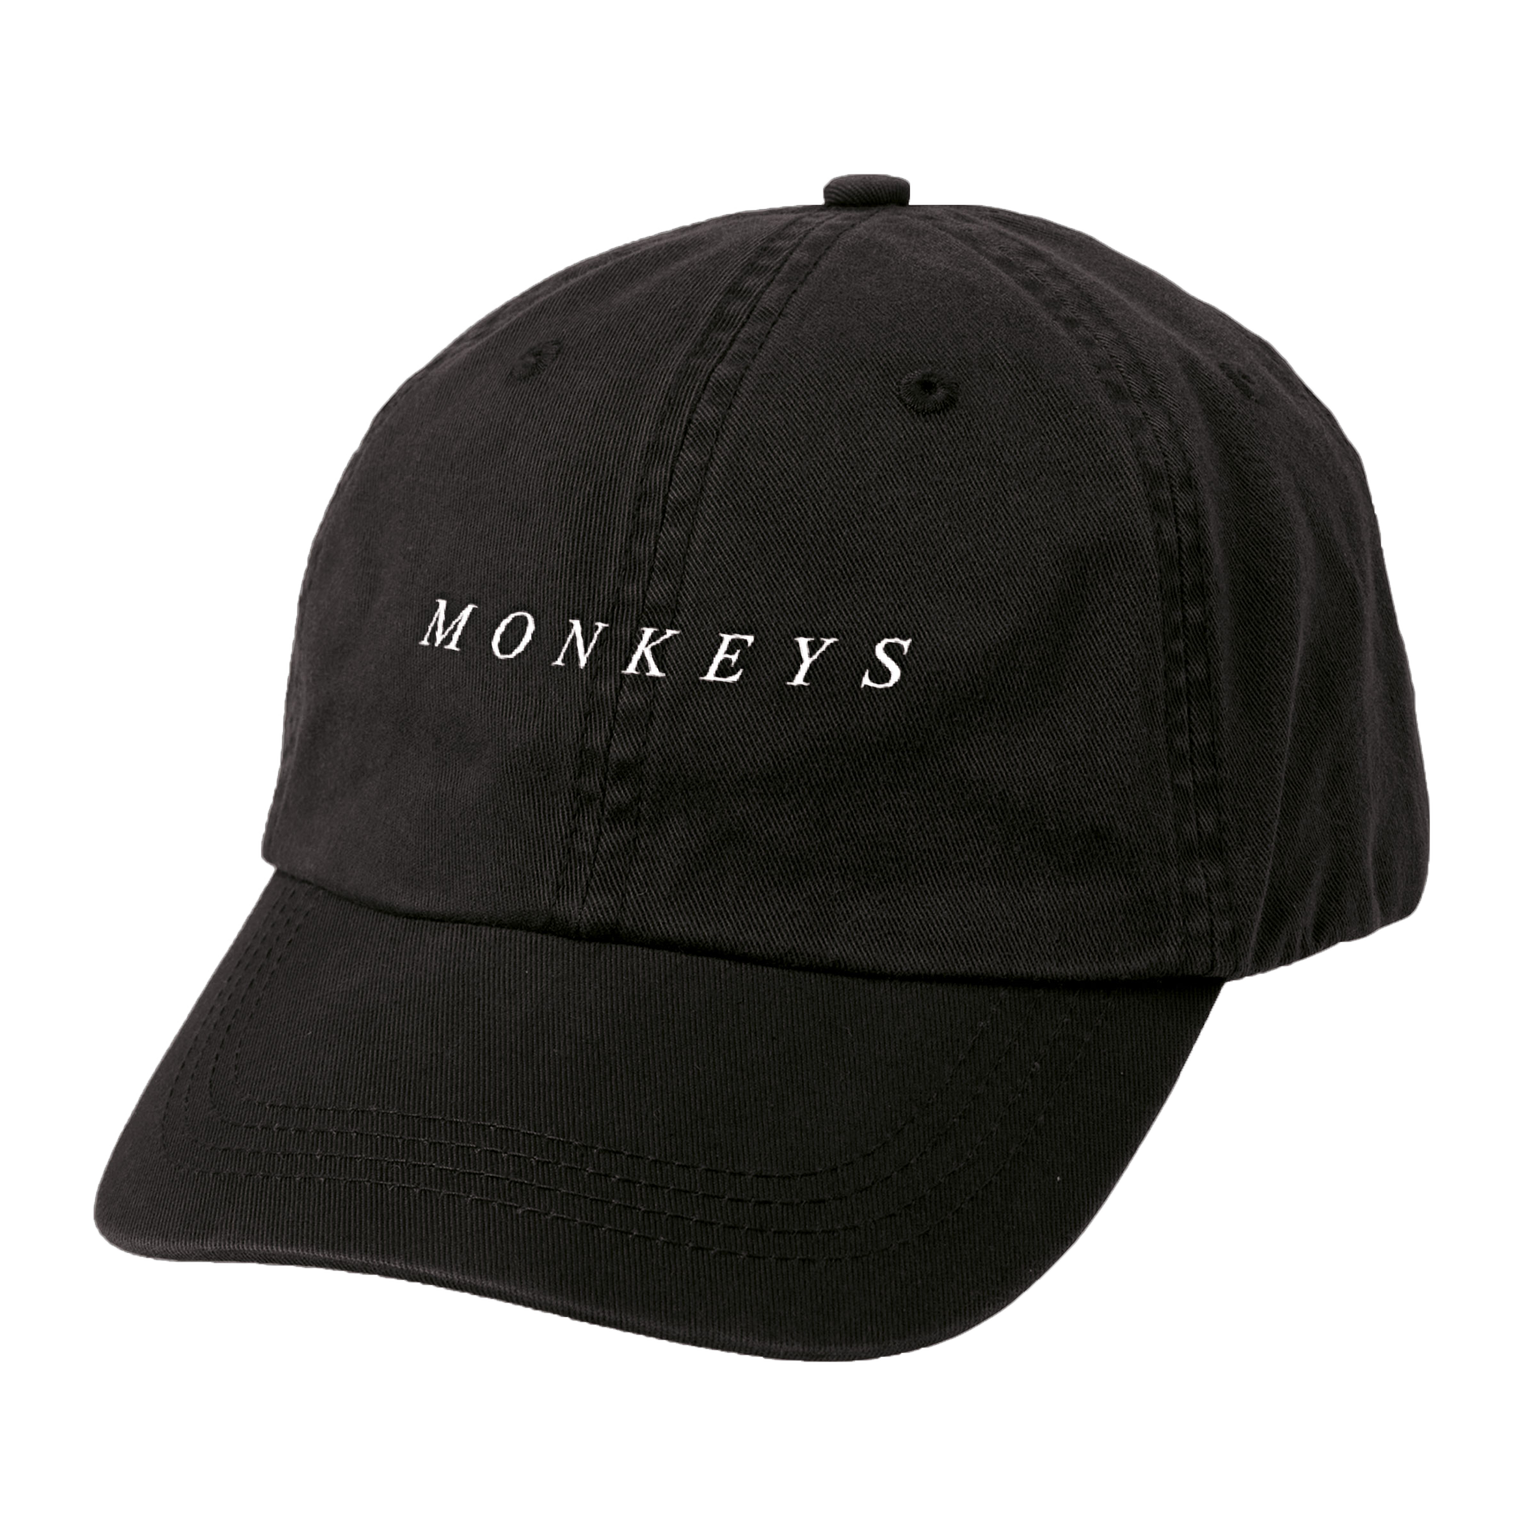 'MONKEYS' DAD CAP